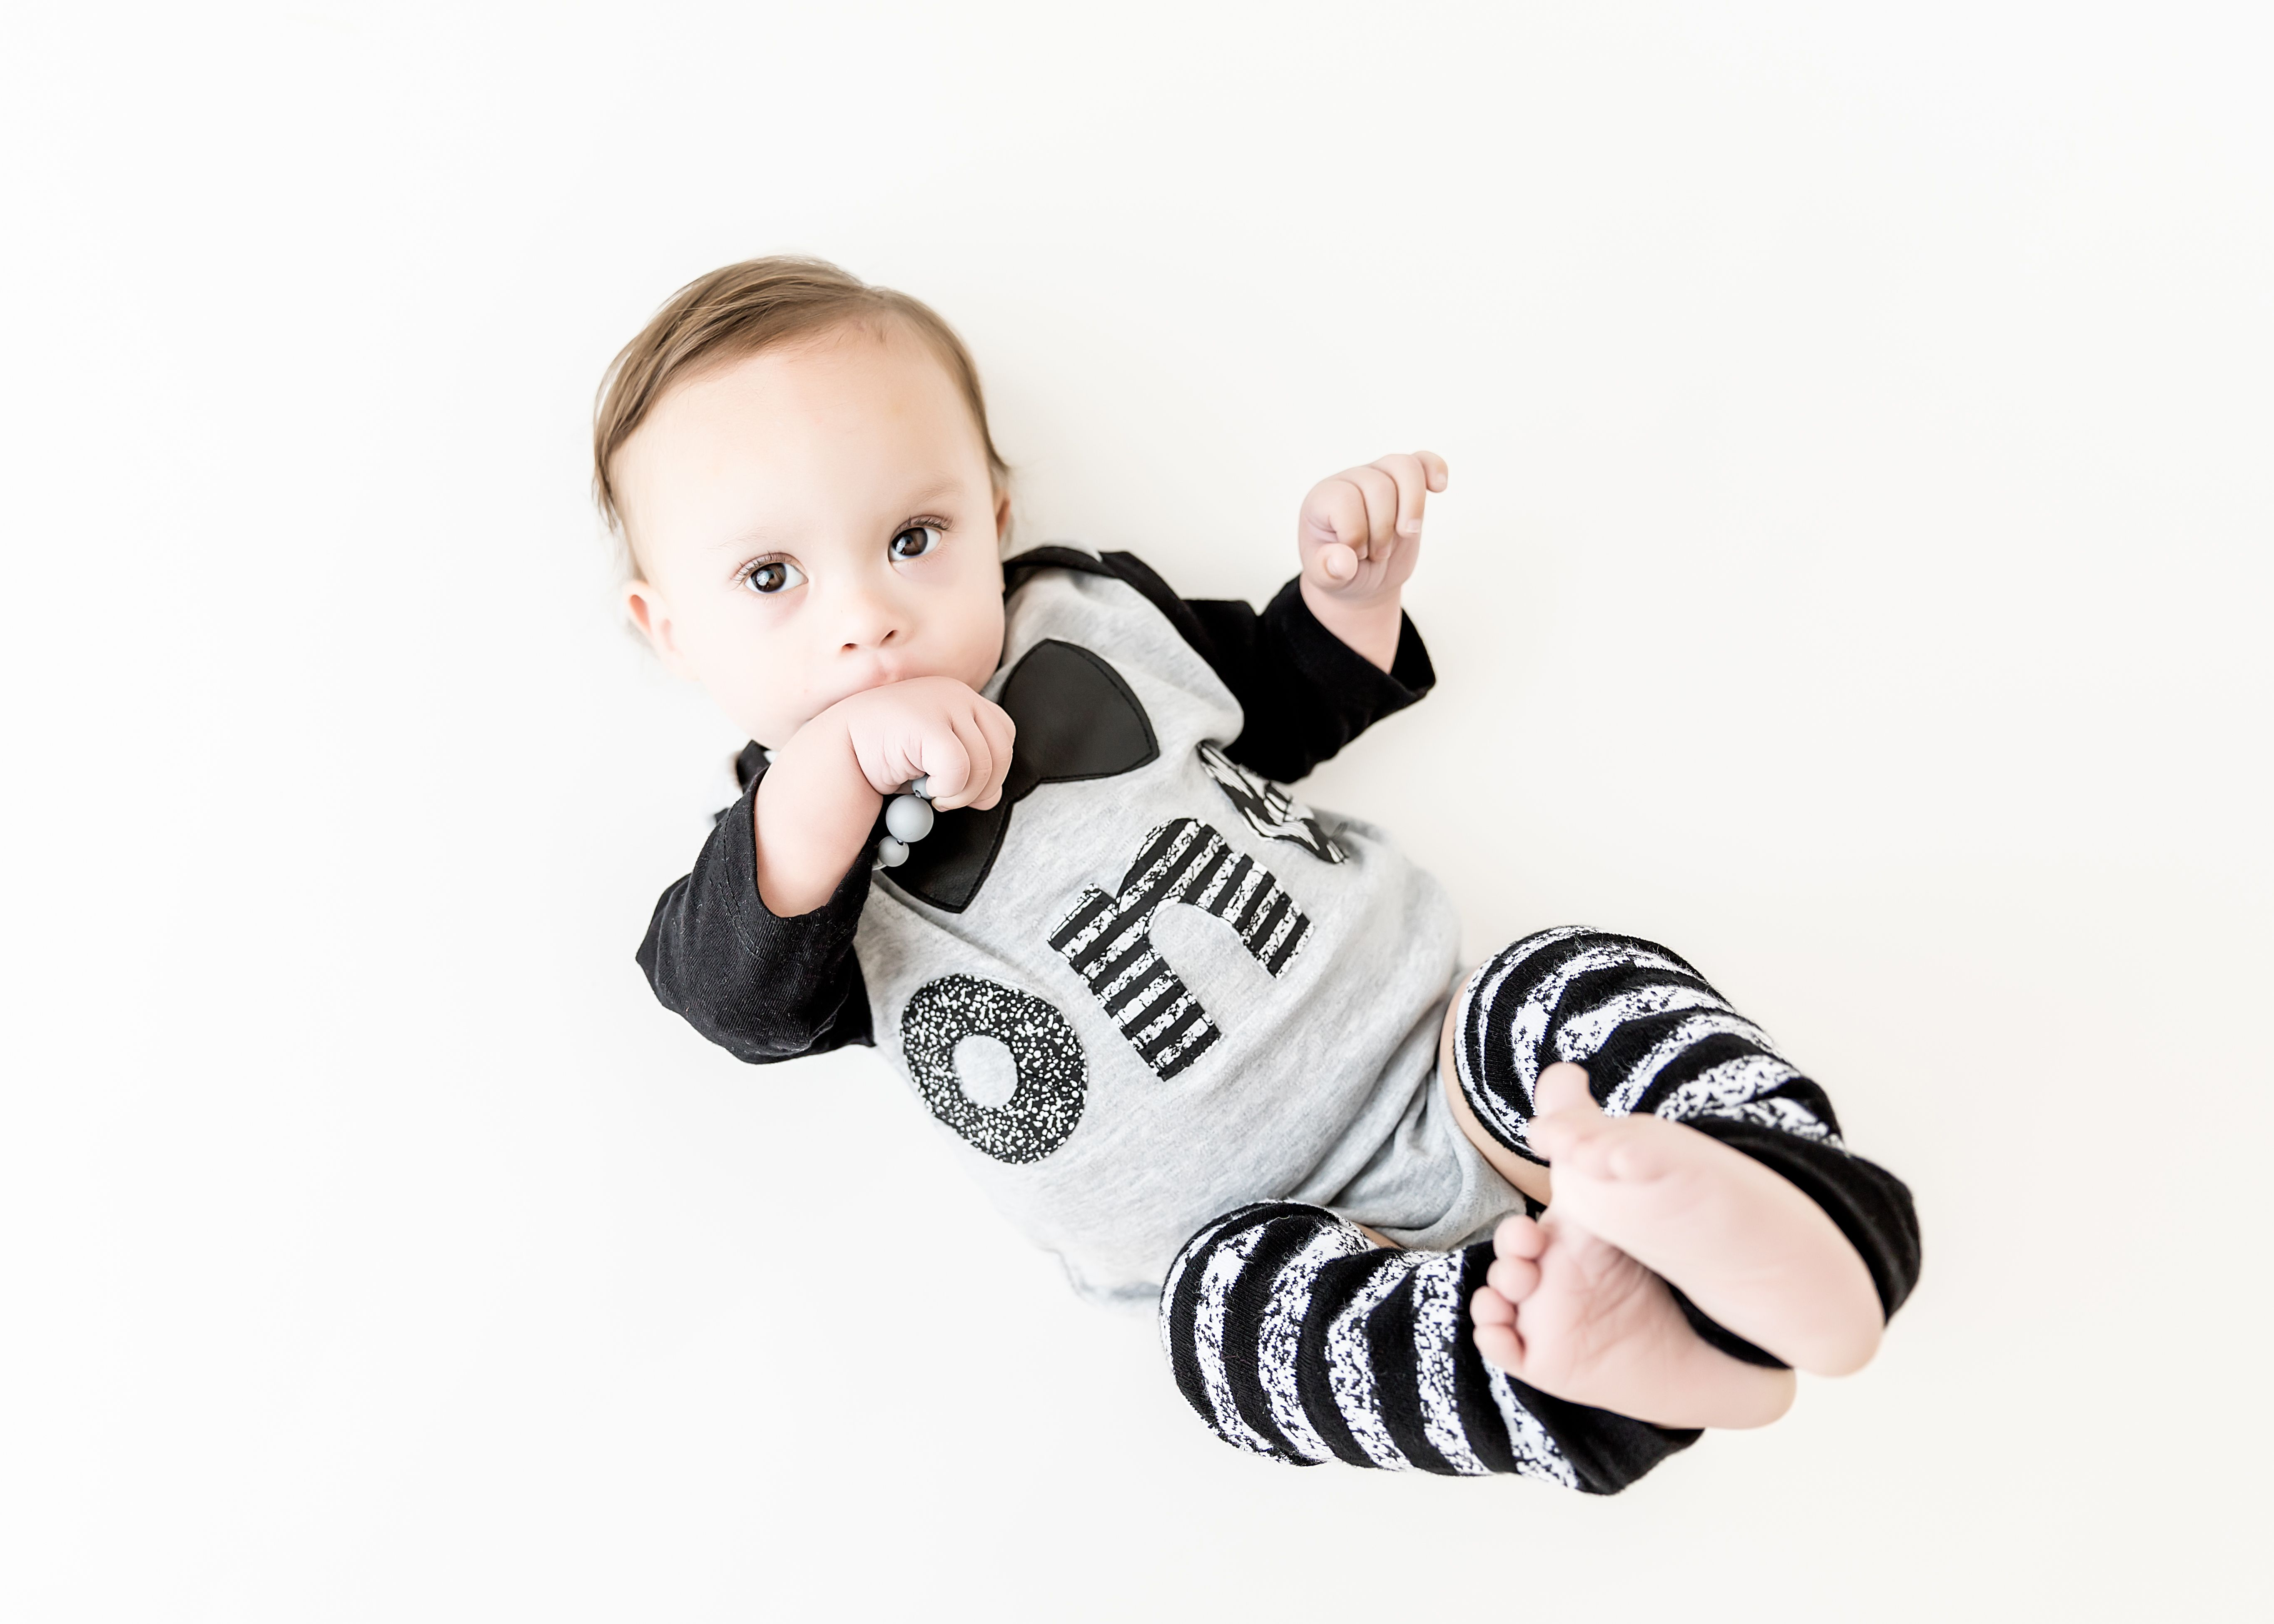 403066b17 1st baby boys first birthday onesie classy outfit set bow tie, black shirt,  for